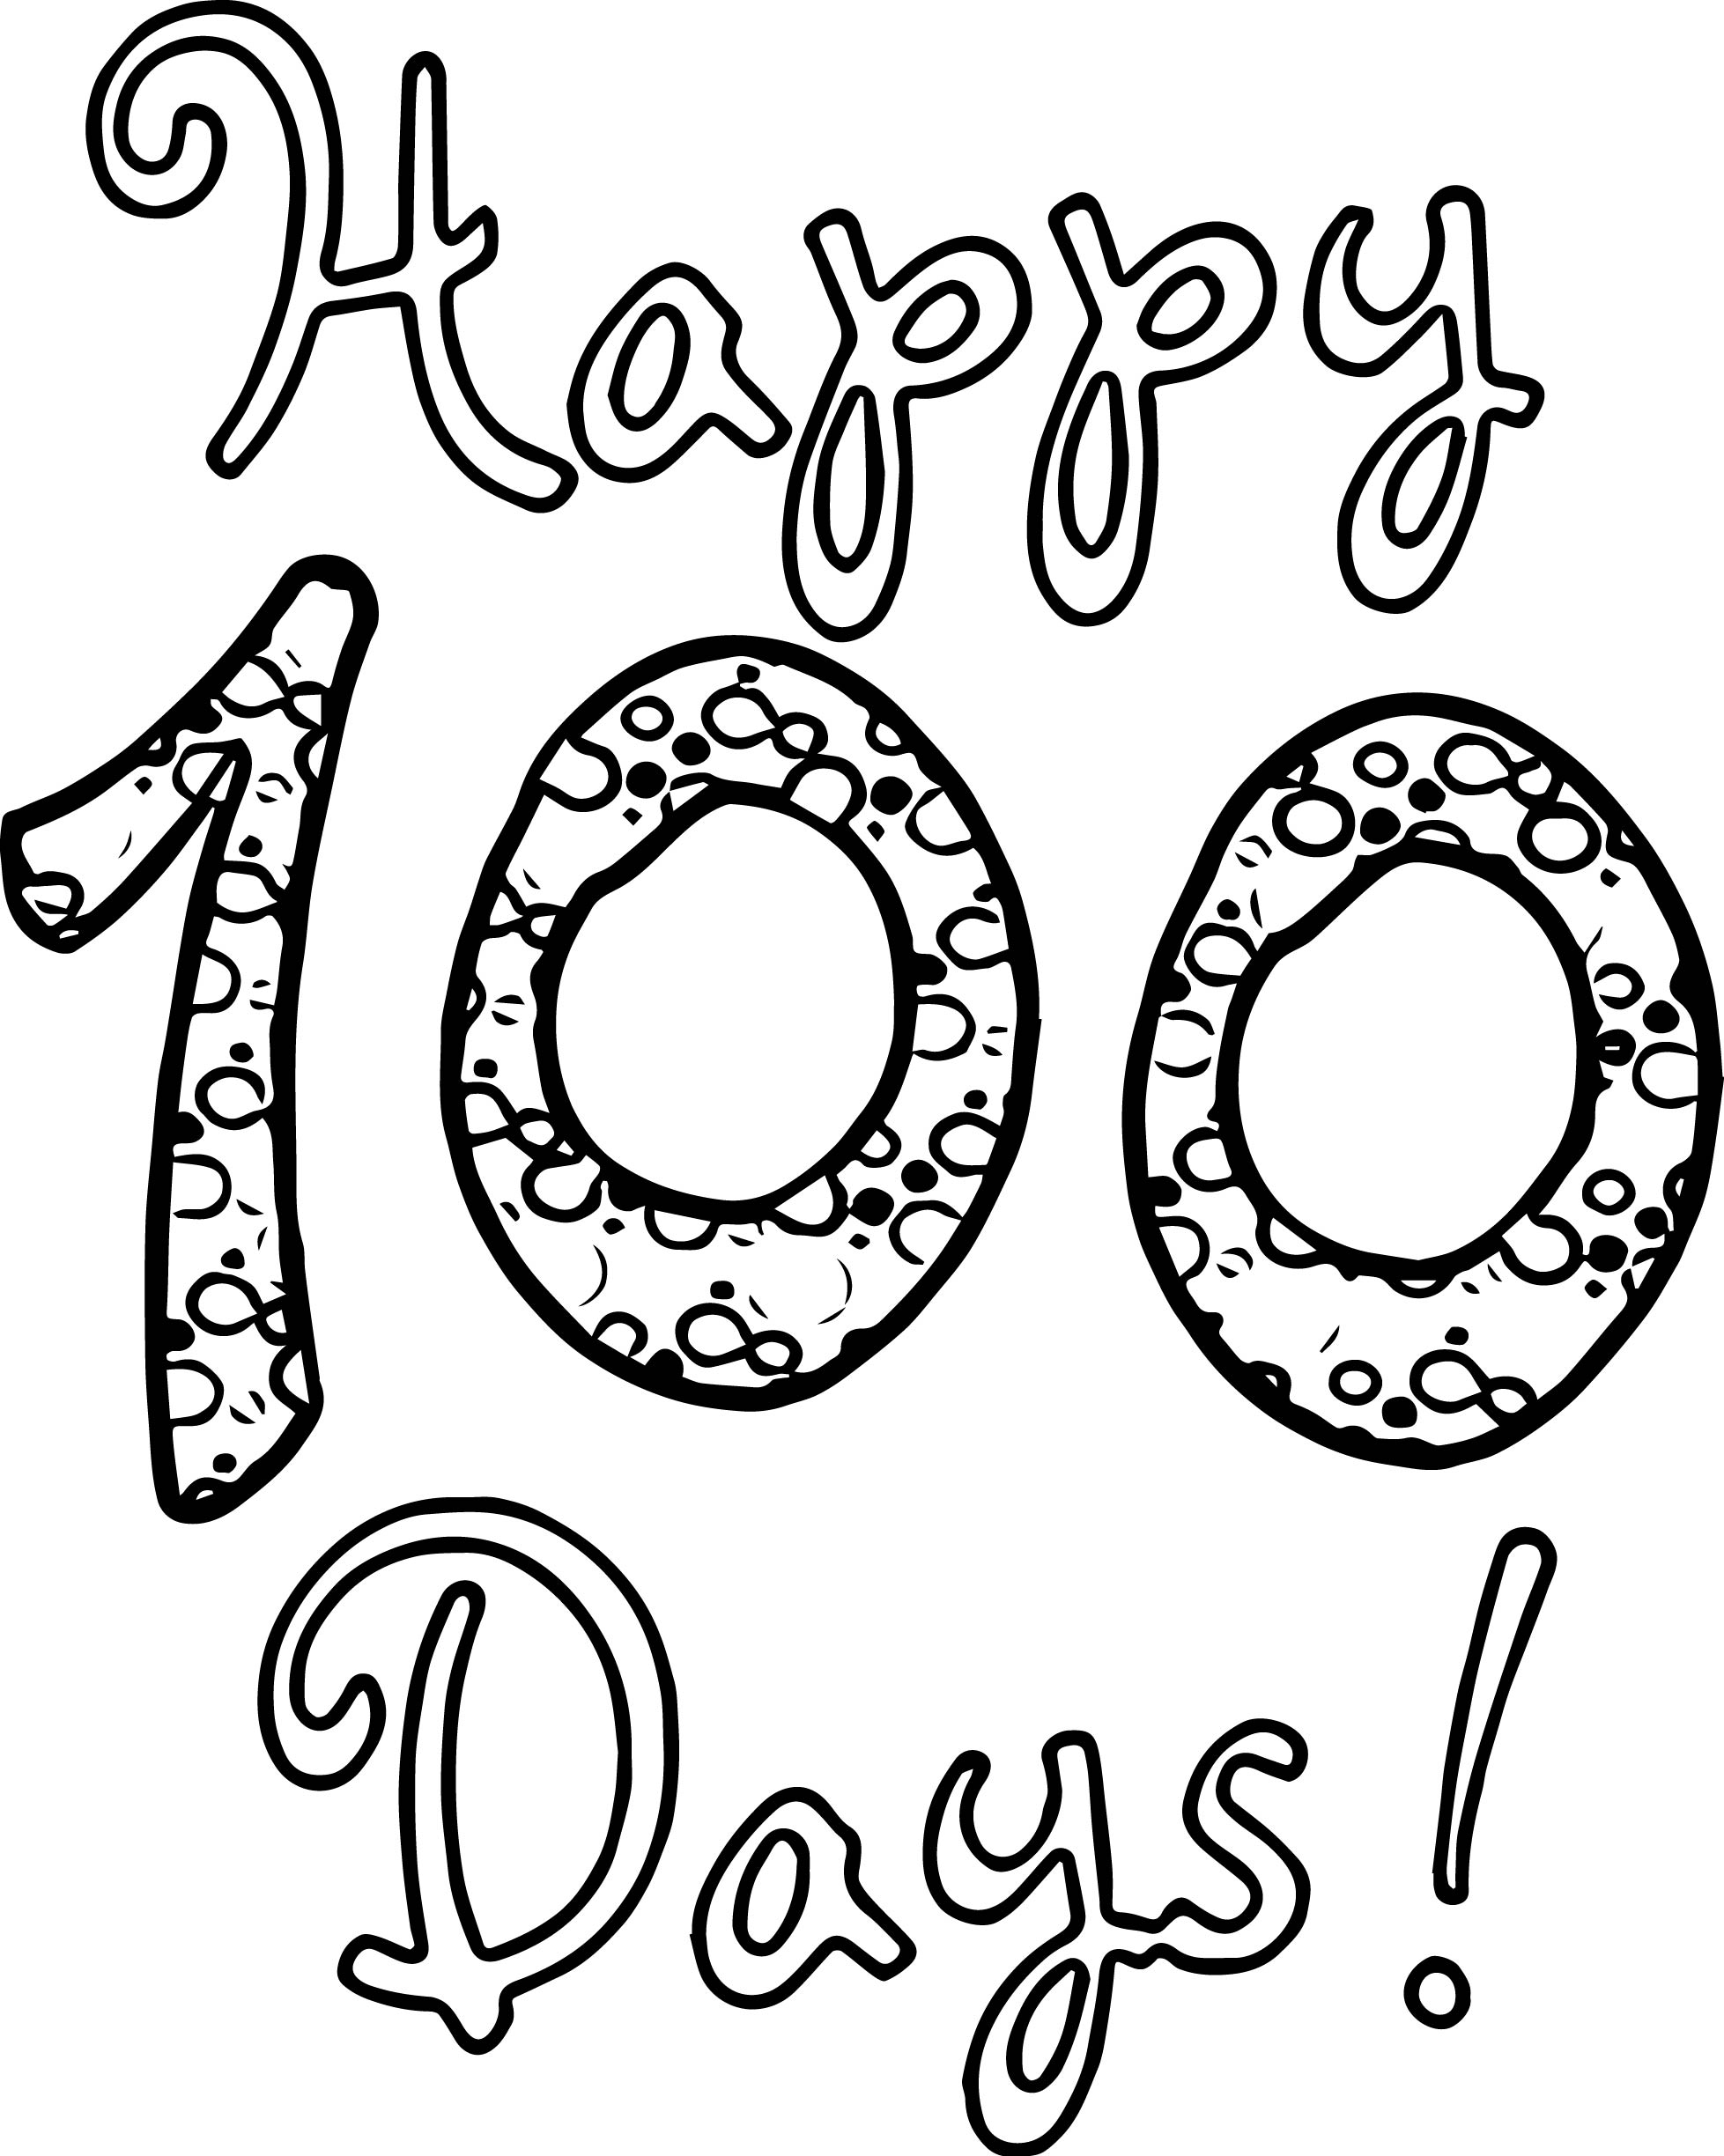 100th Day Of School Coloring Pages Coloring Book of Coloring Page